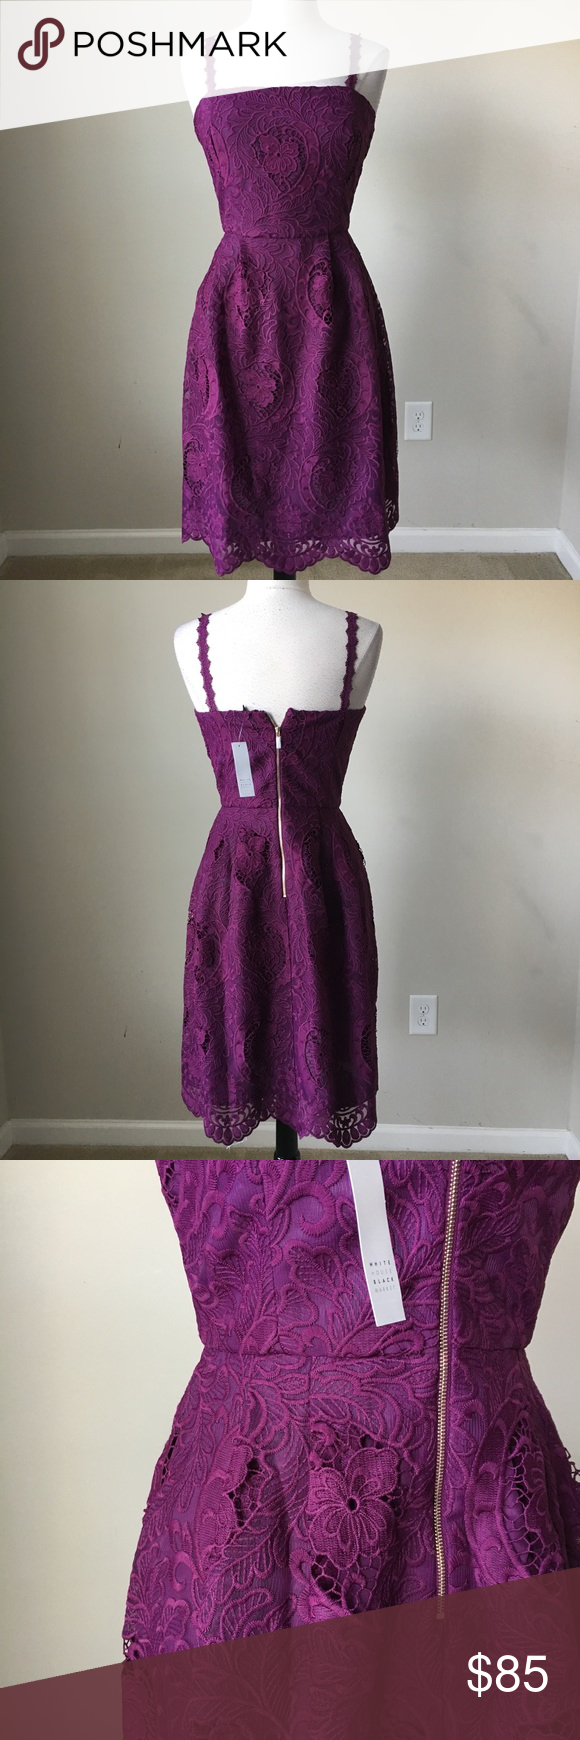 Purple sleeveless lace fit and flare dress size 12 NWT